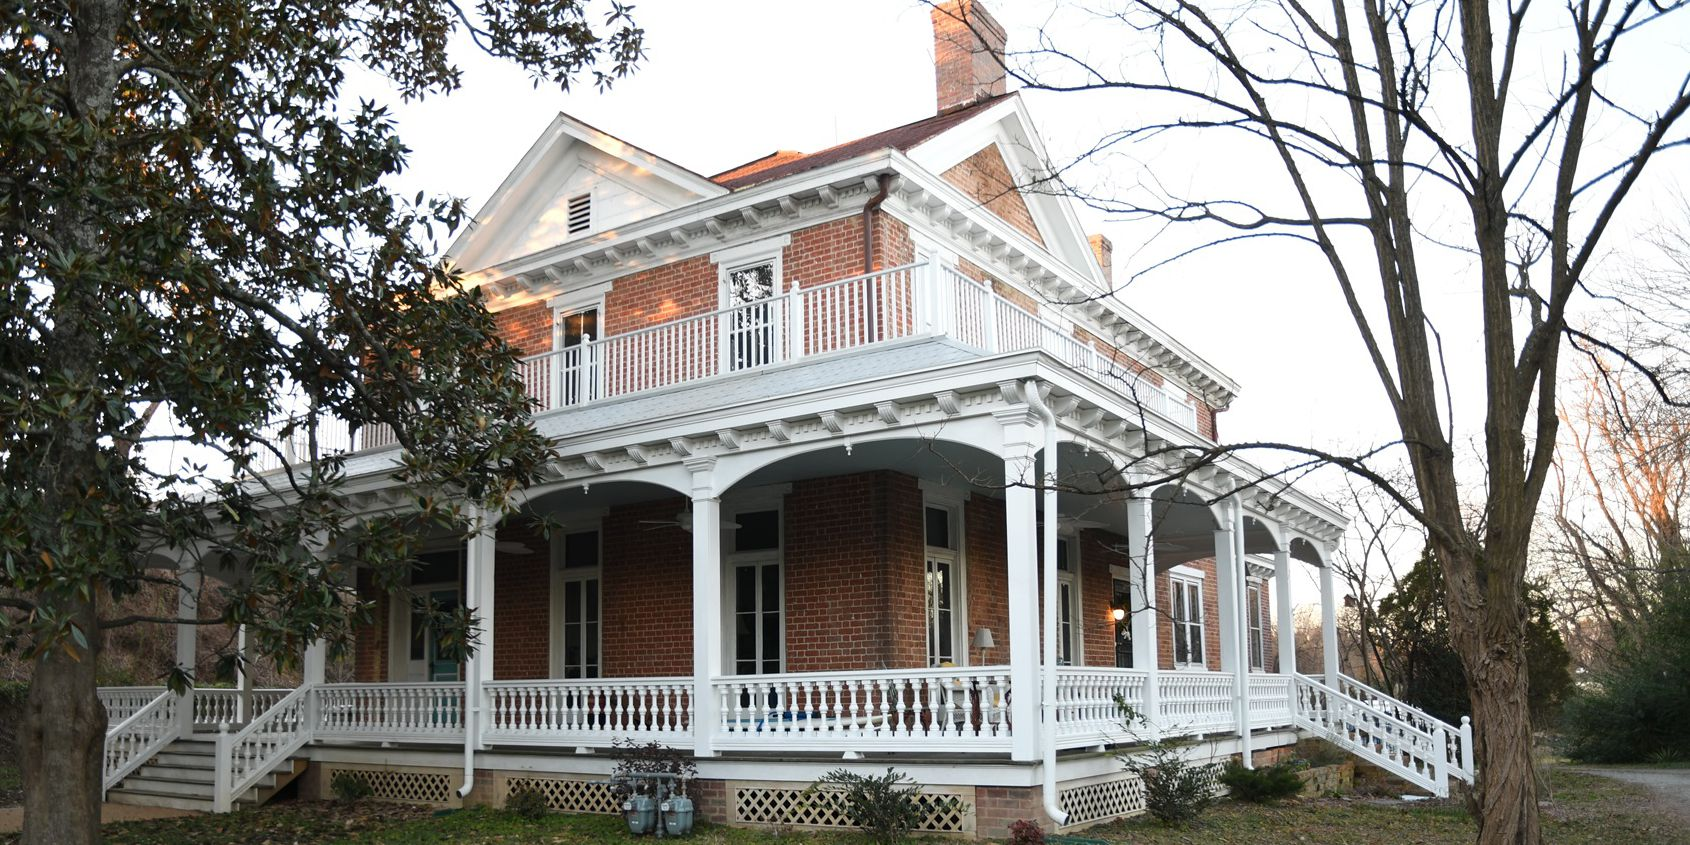 7 locations approved to be added to Virginia Landmarks Registry